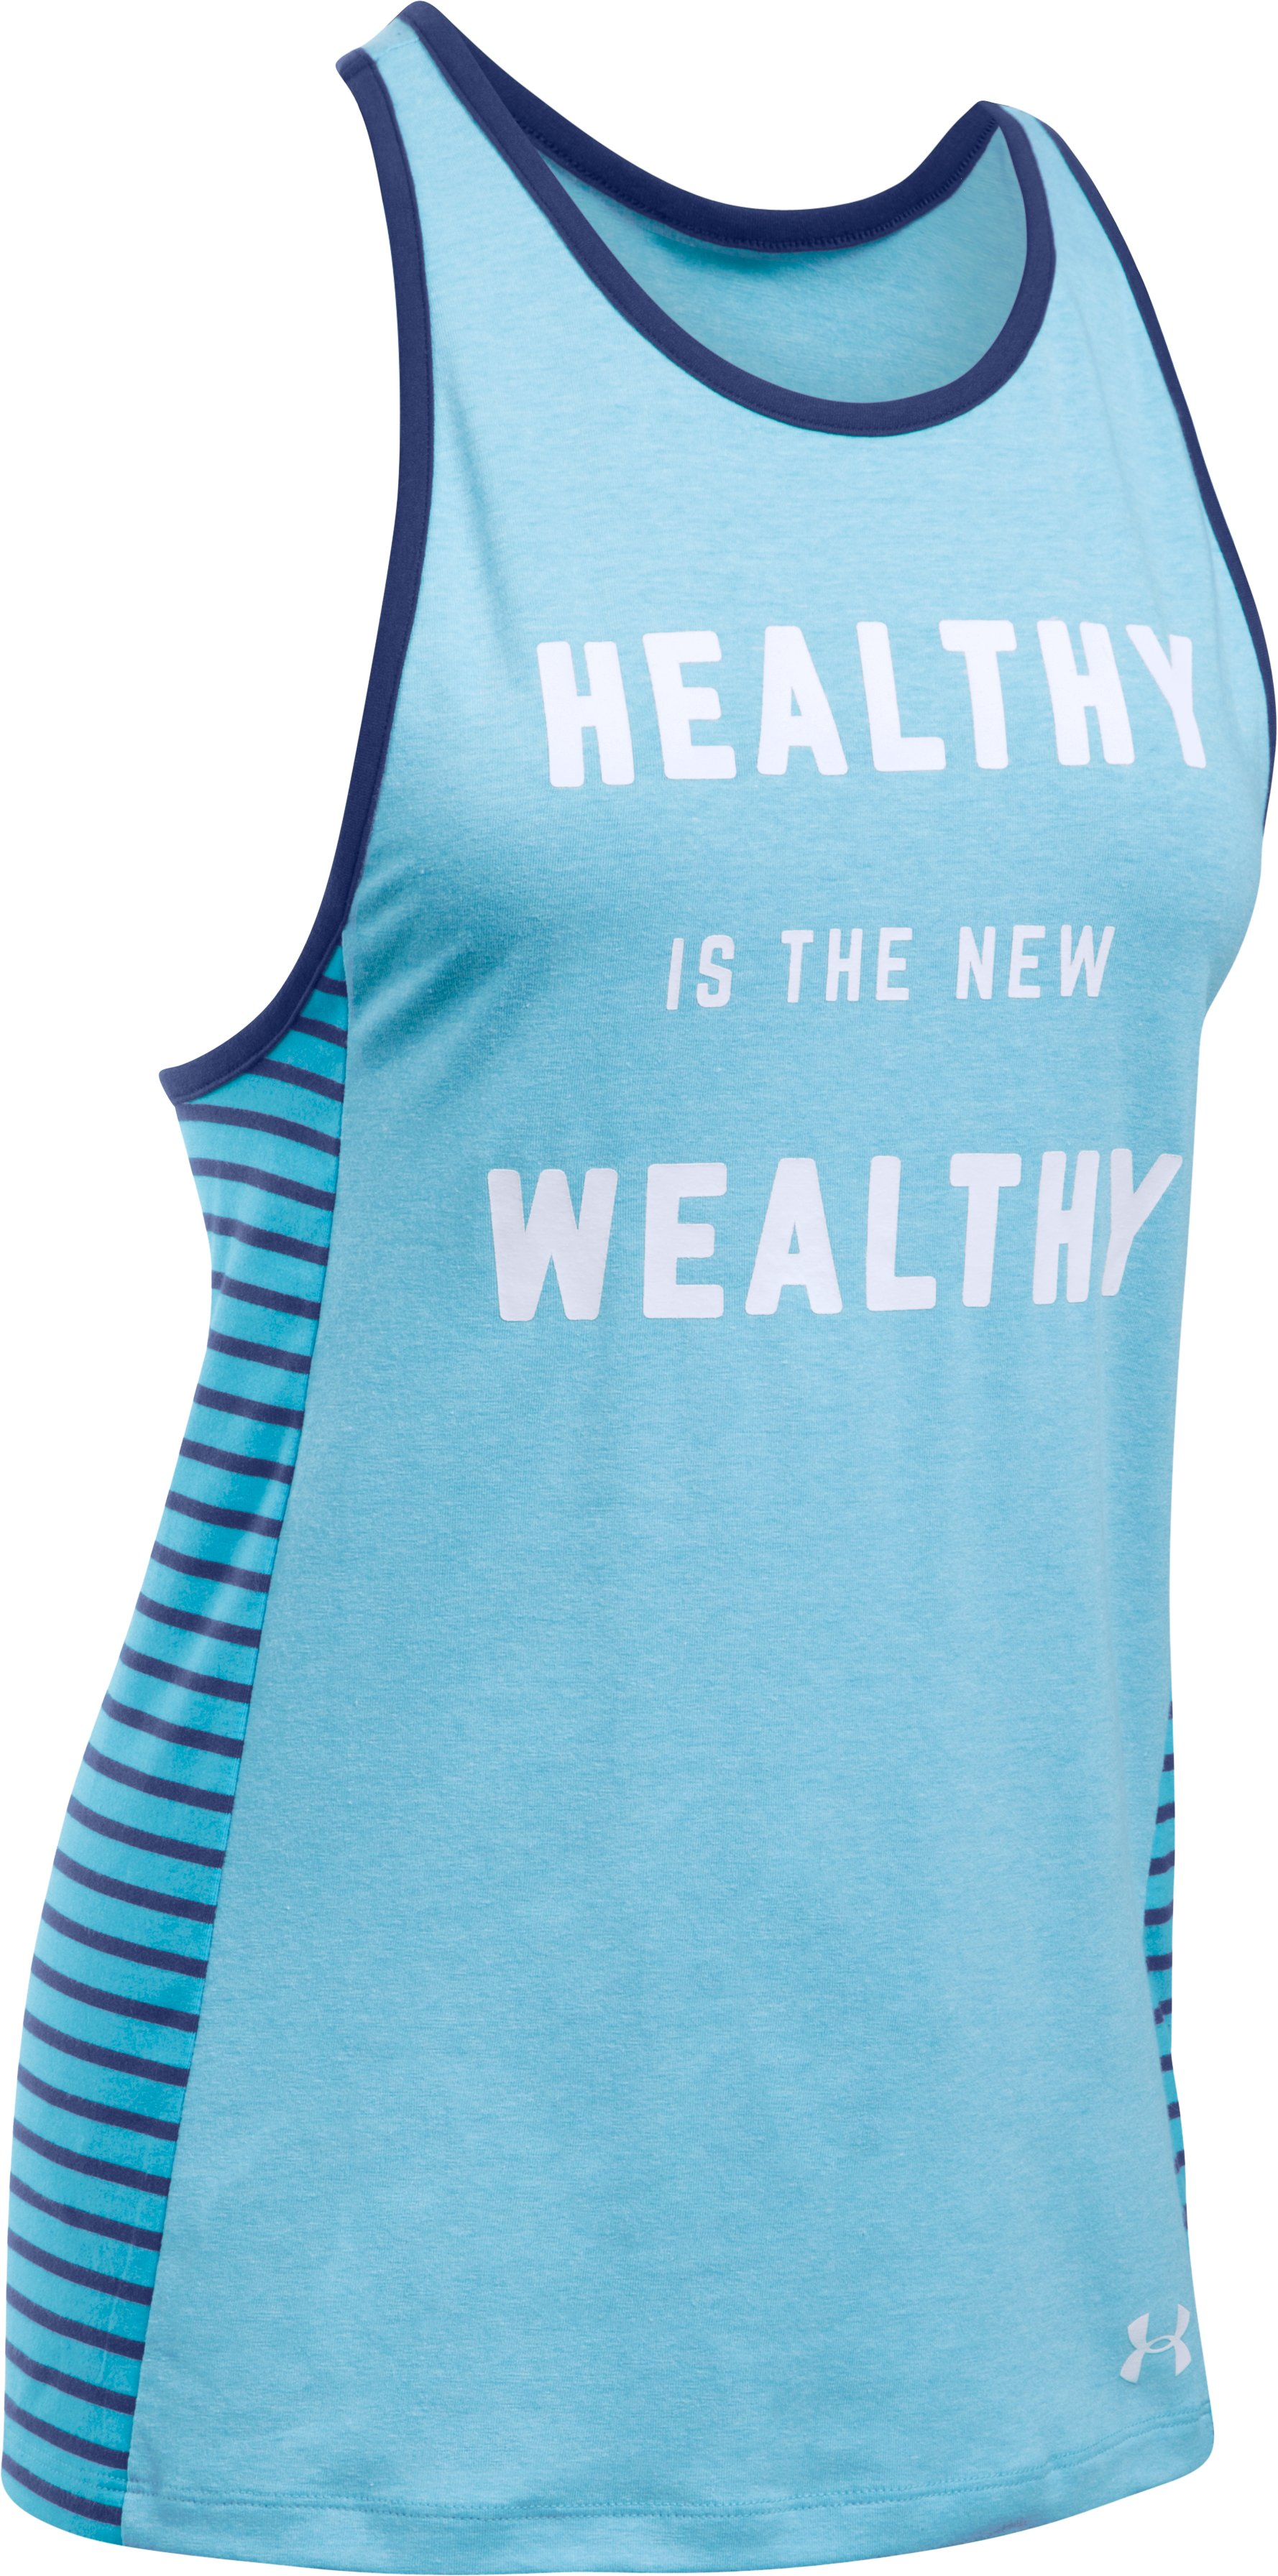 Women's UA Rest Day Healthy Wealthy Tank, ISLAND BLUES LIGHT HEATHER,